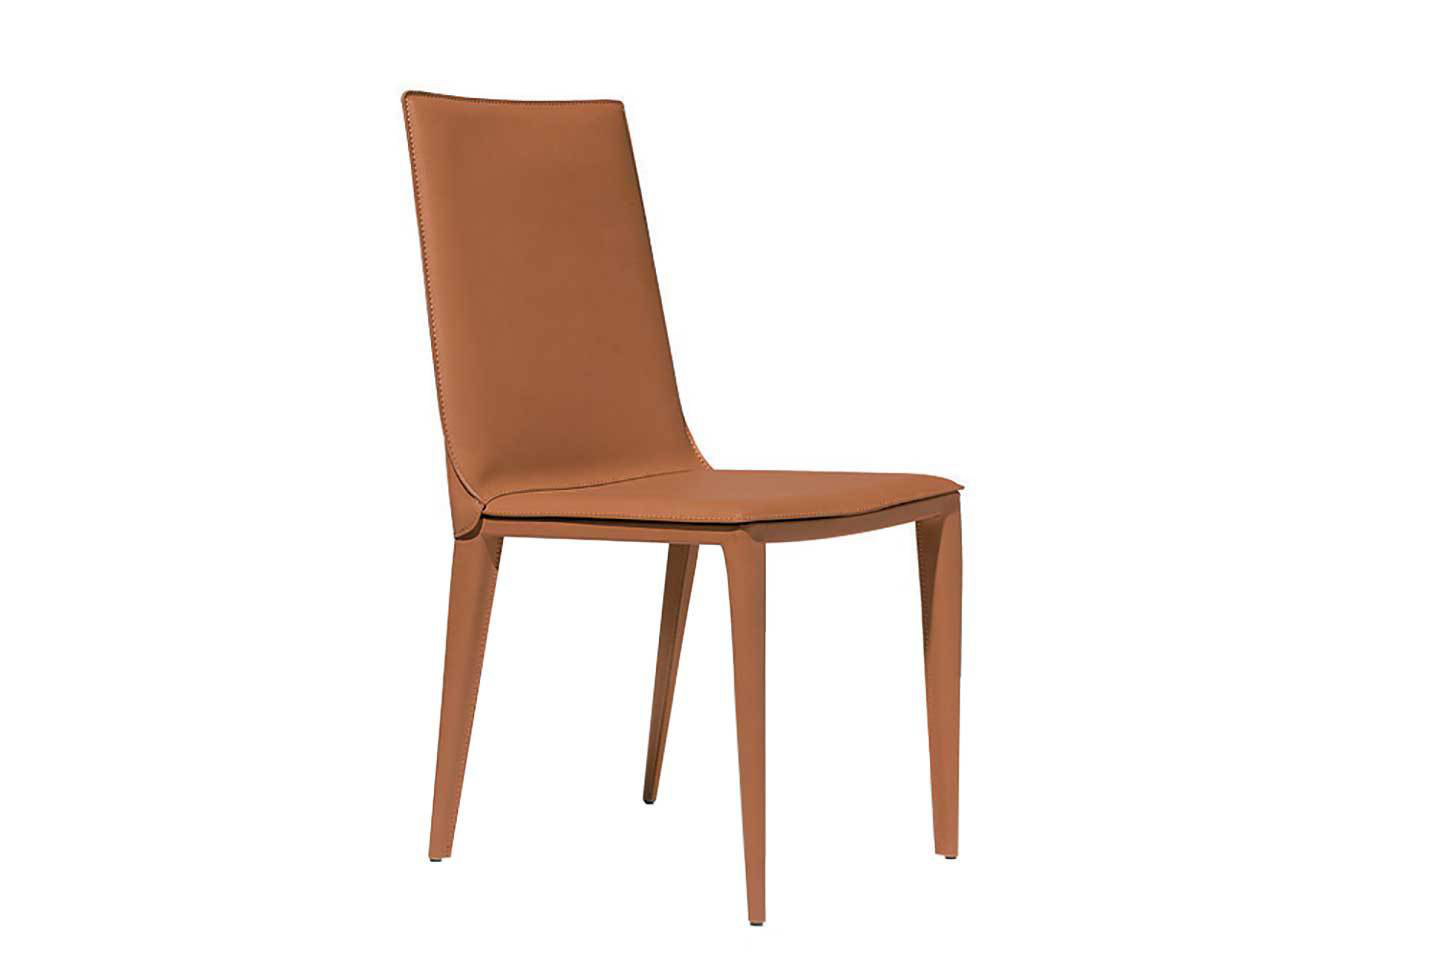 Mobili Italia_Frag Latina H side chair